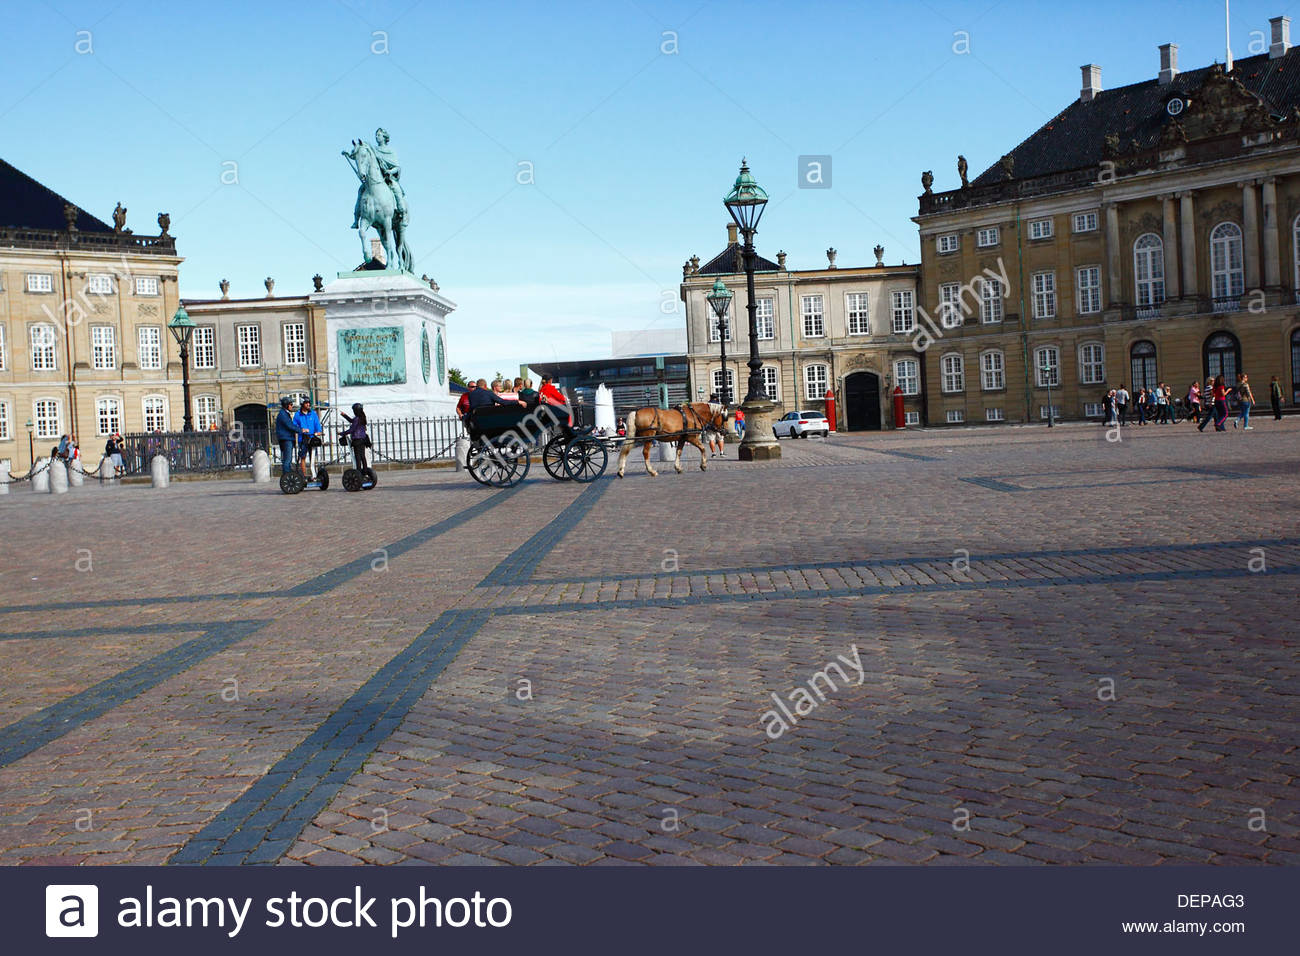 Amalienborg Slot, winter home of the Danish royal family, in Copenhagen, Denmark. - Stock Image